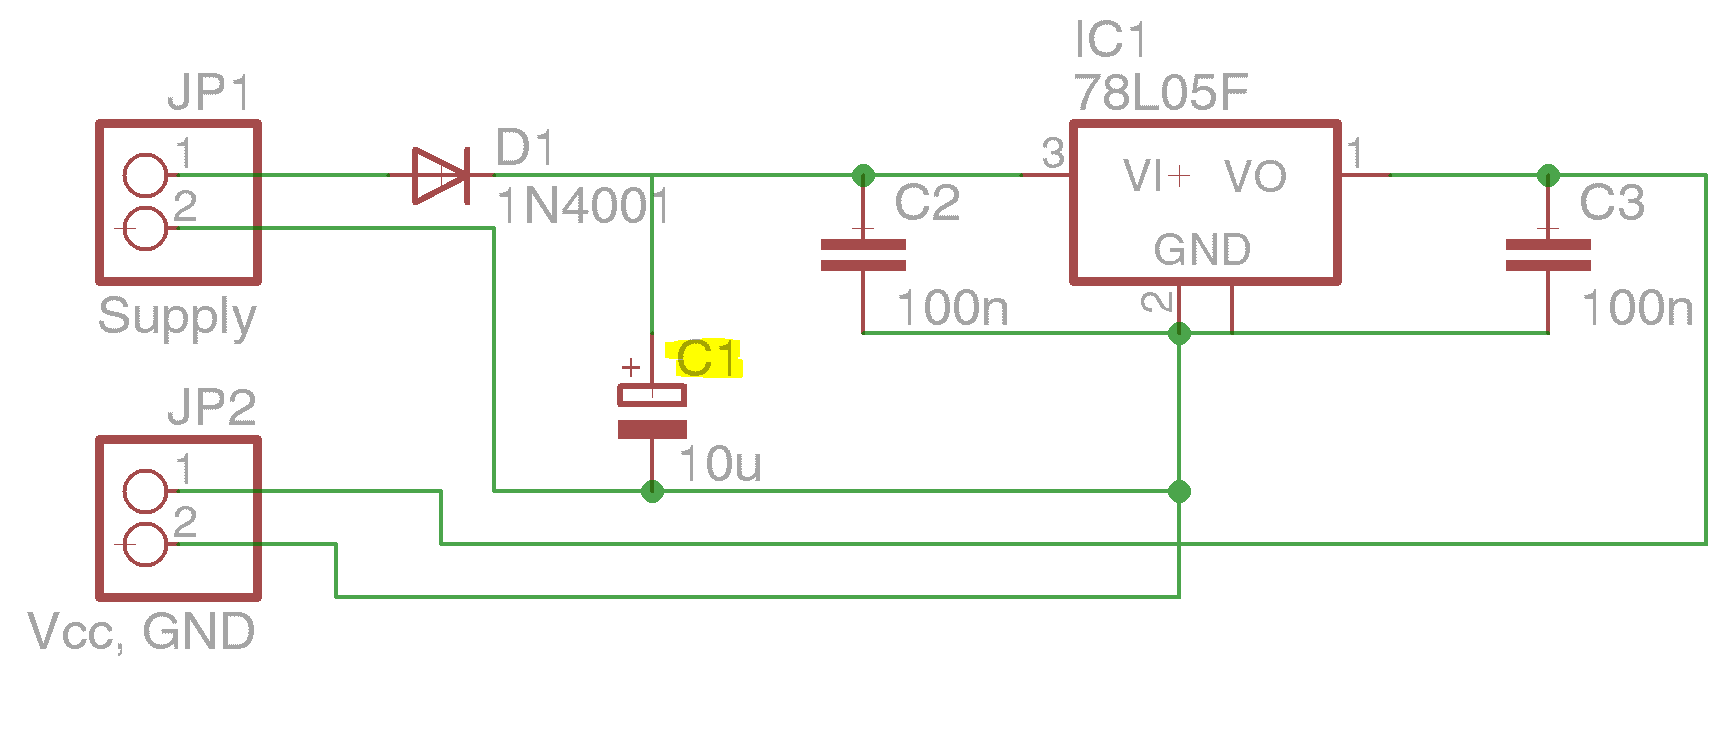 Atmega8 Spannungsversorgung Circuit Diagram Preview Image For Supply Board